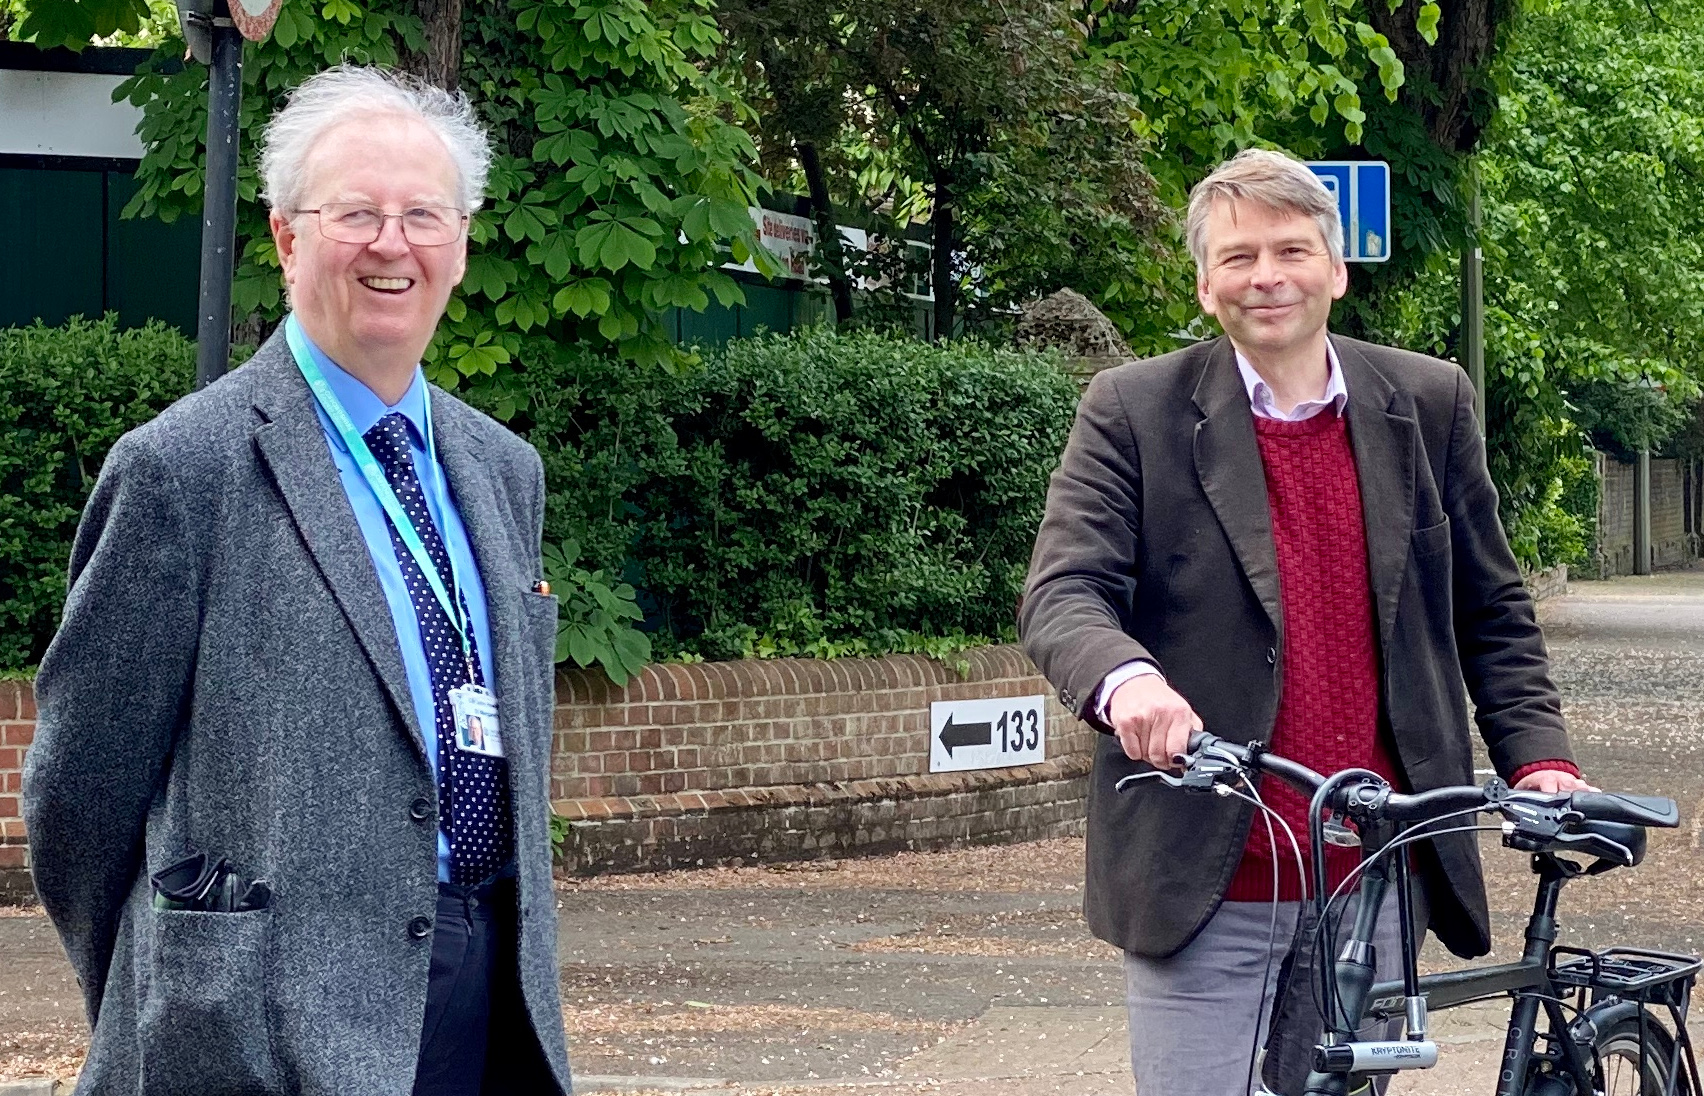 City Lib Dems say Labour Council must go further on sustainable travel